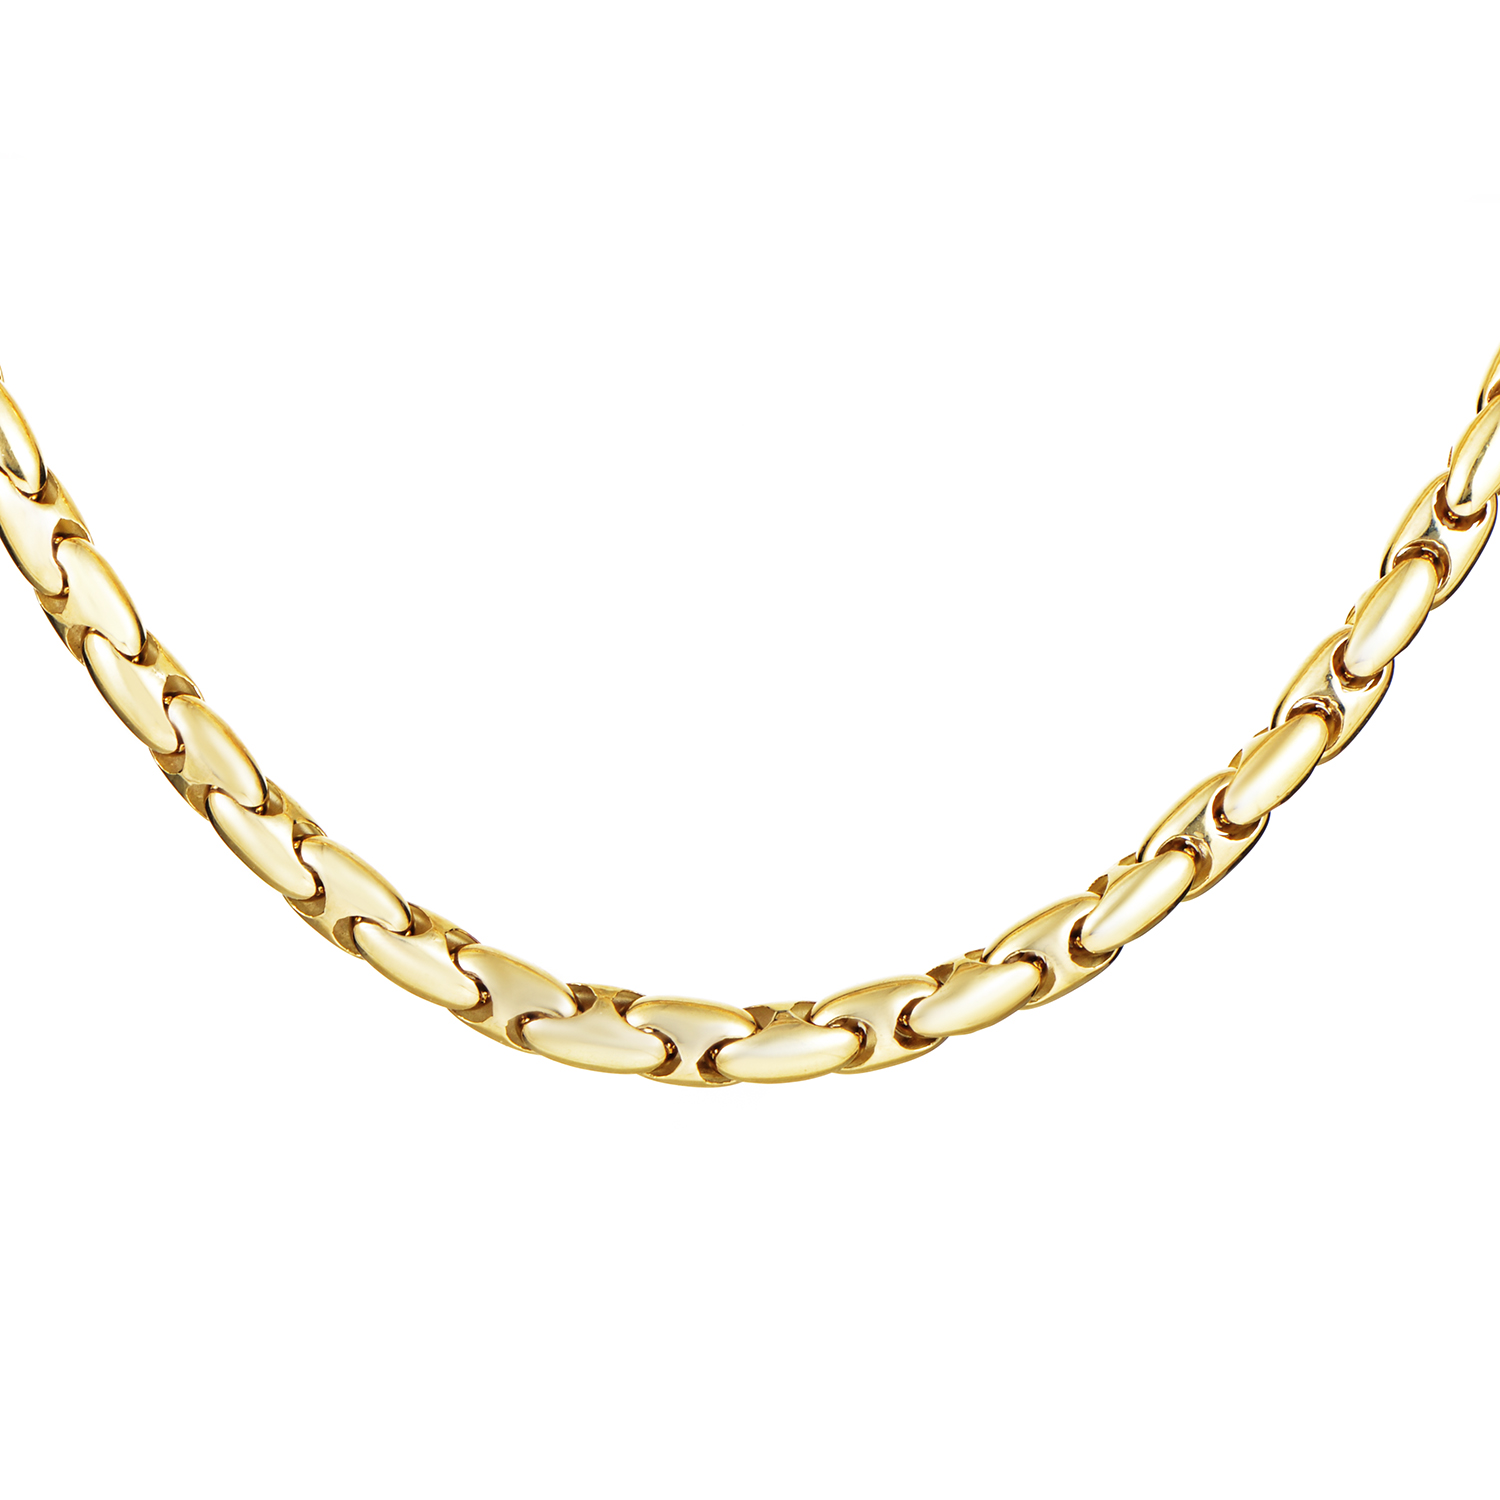 Women's 18K Yellow Gold Link Choker Necklace CHI02-071516